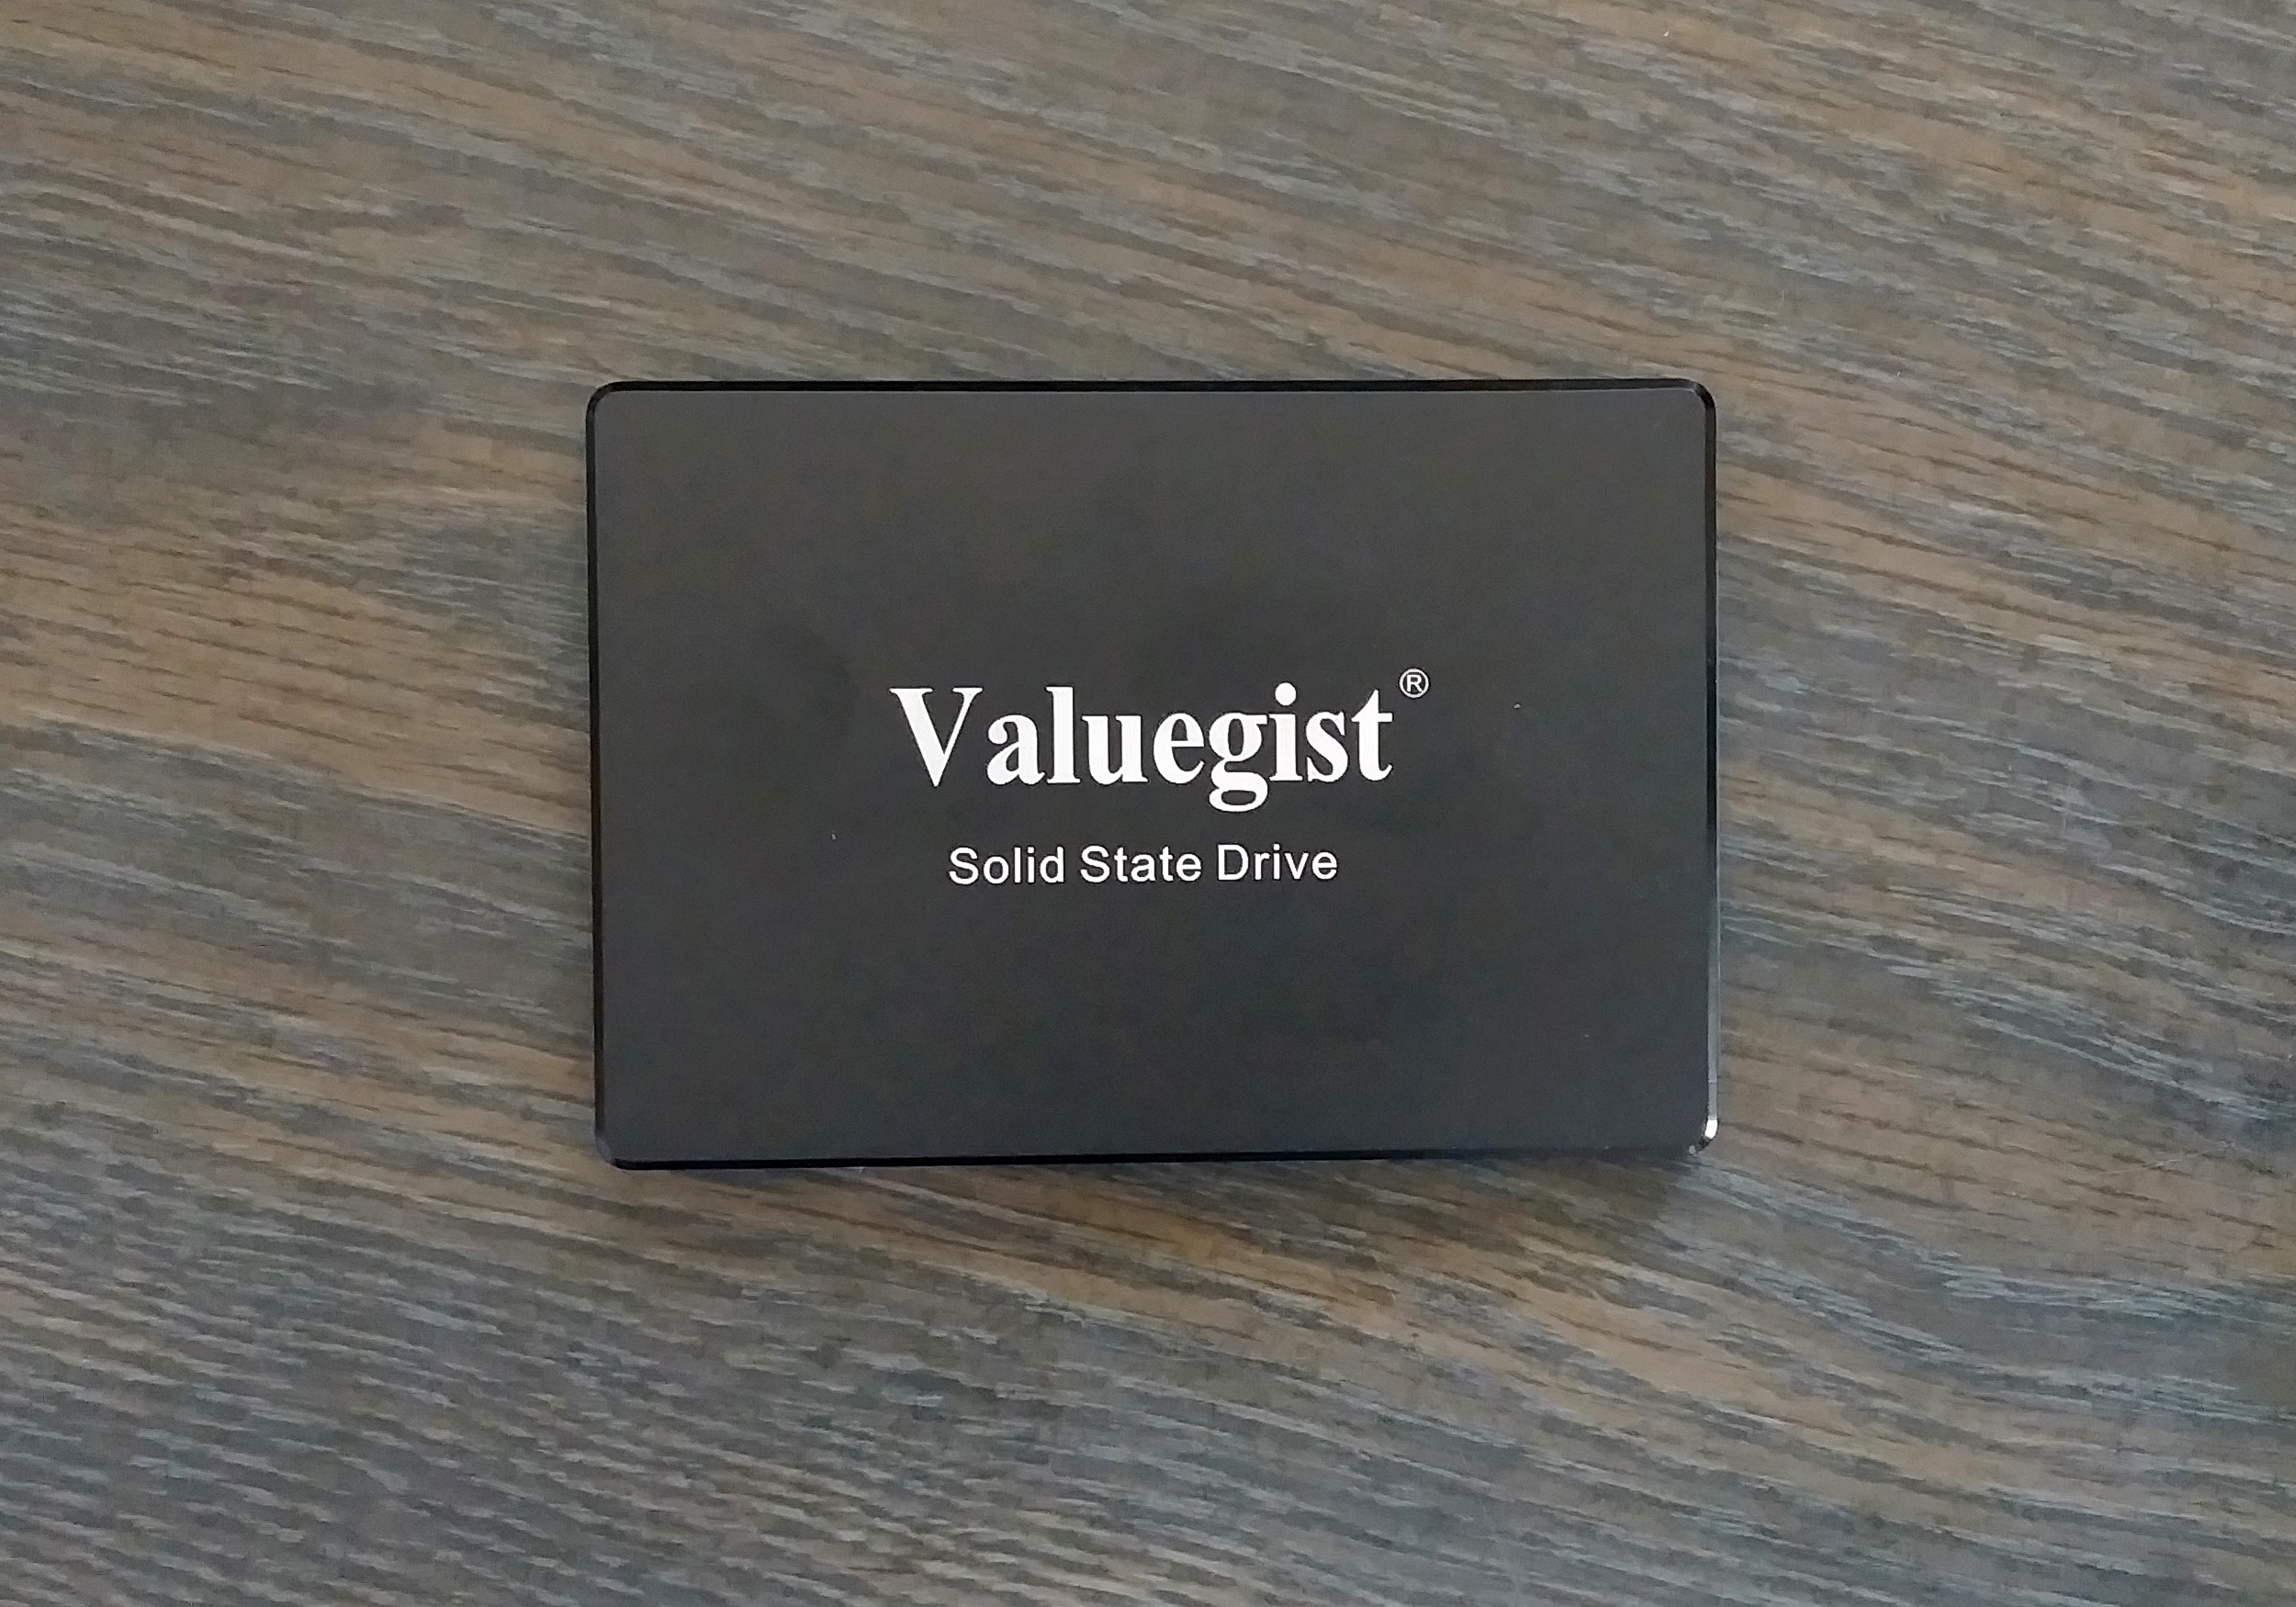 Valuegist ST-120G Solid State Drive